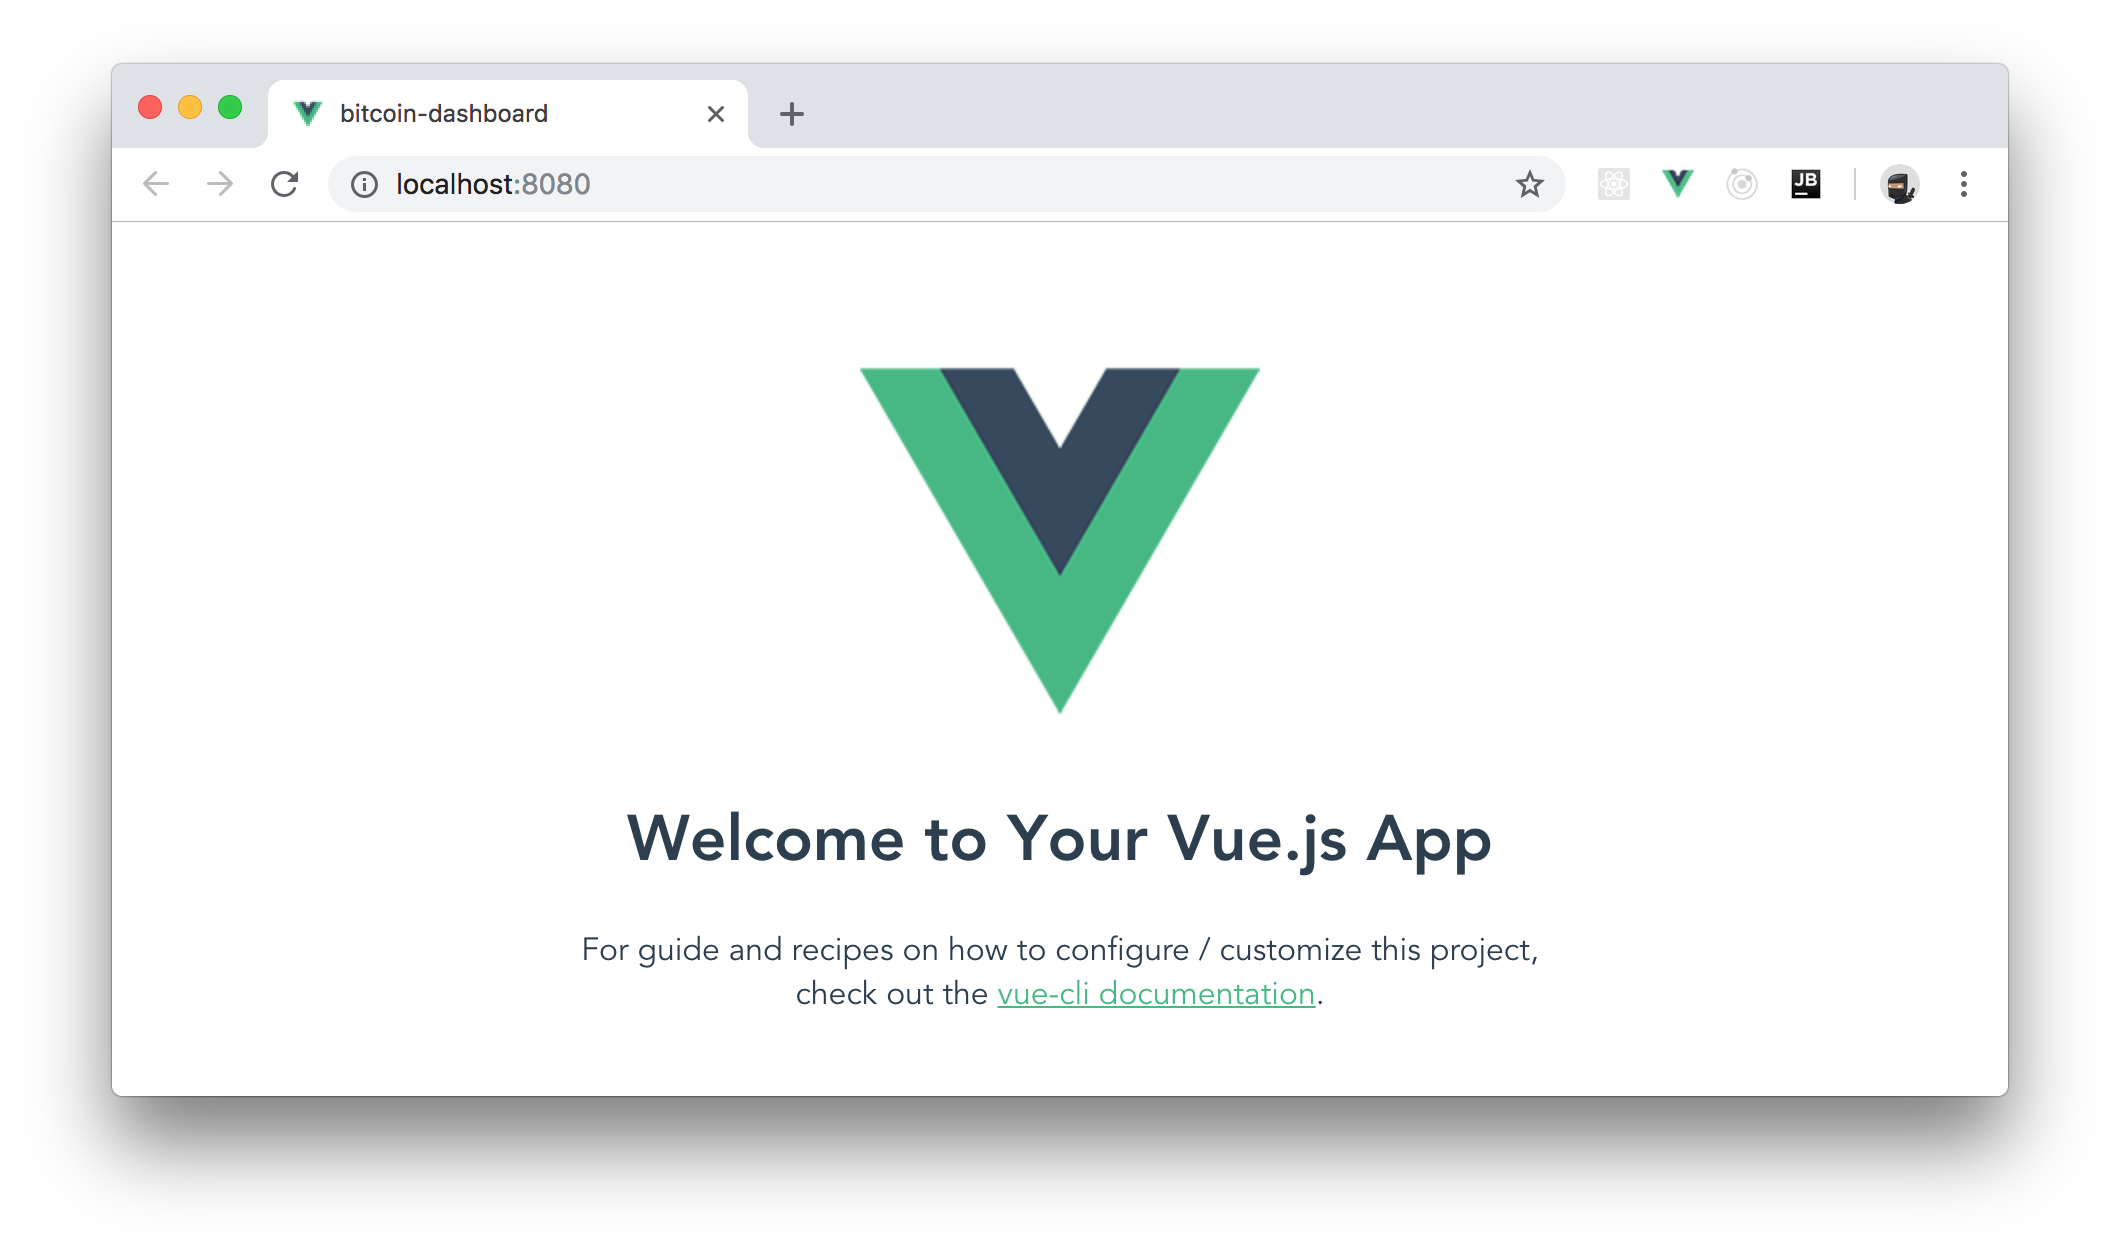 Scaffolding a new Vue.js app with the Vue CLI tool.